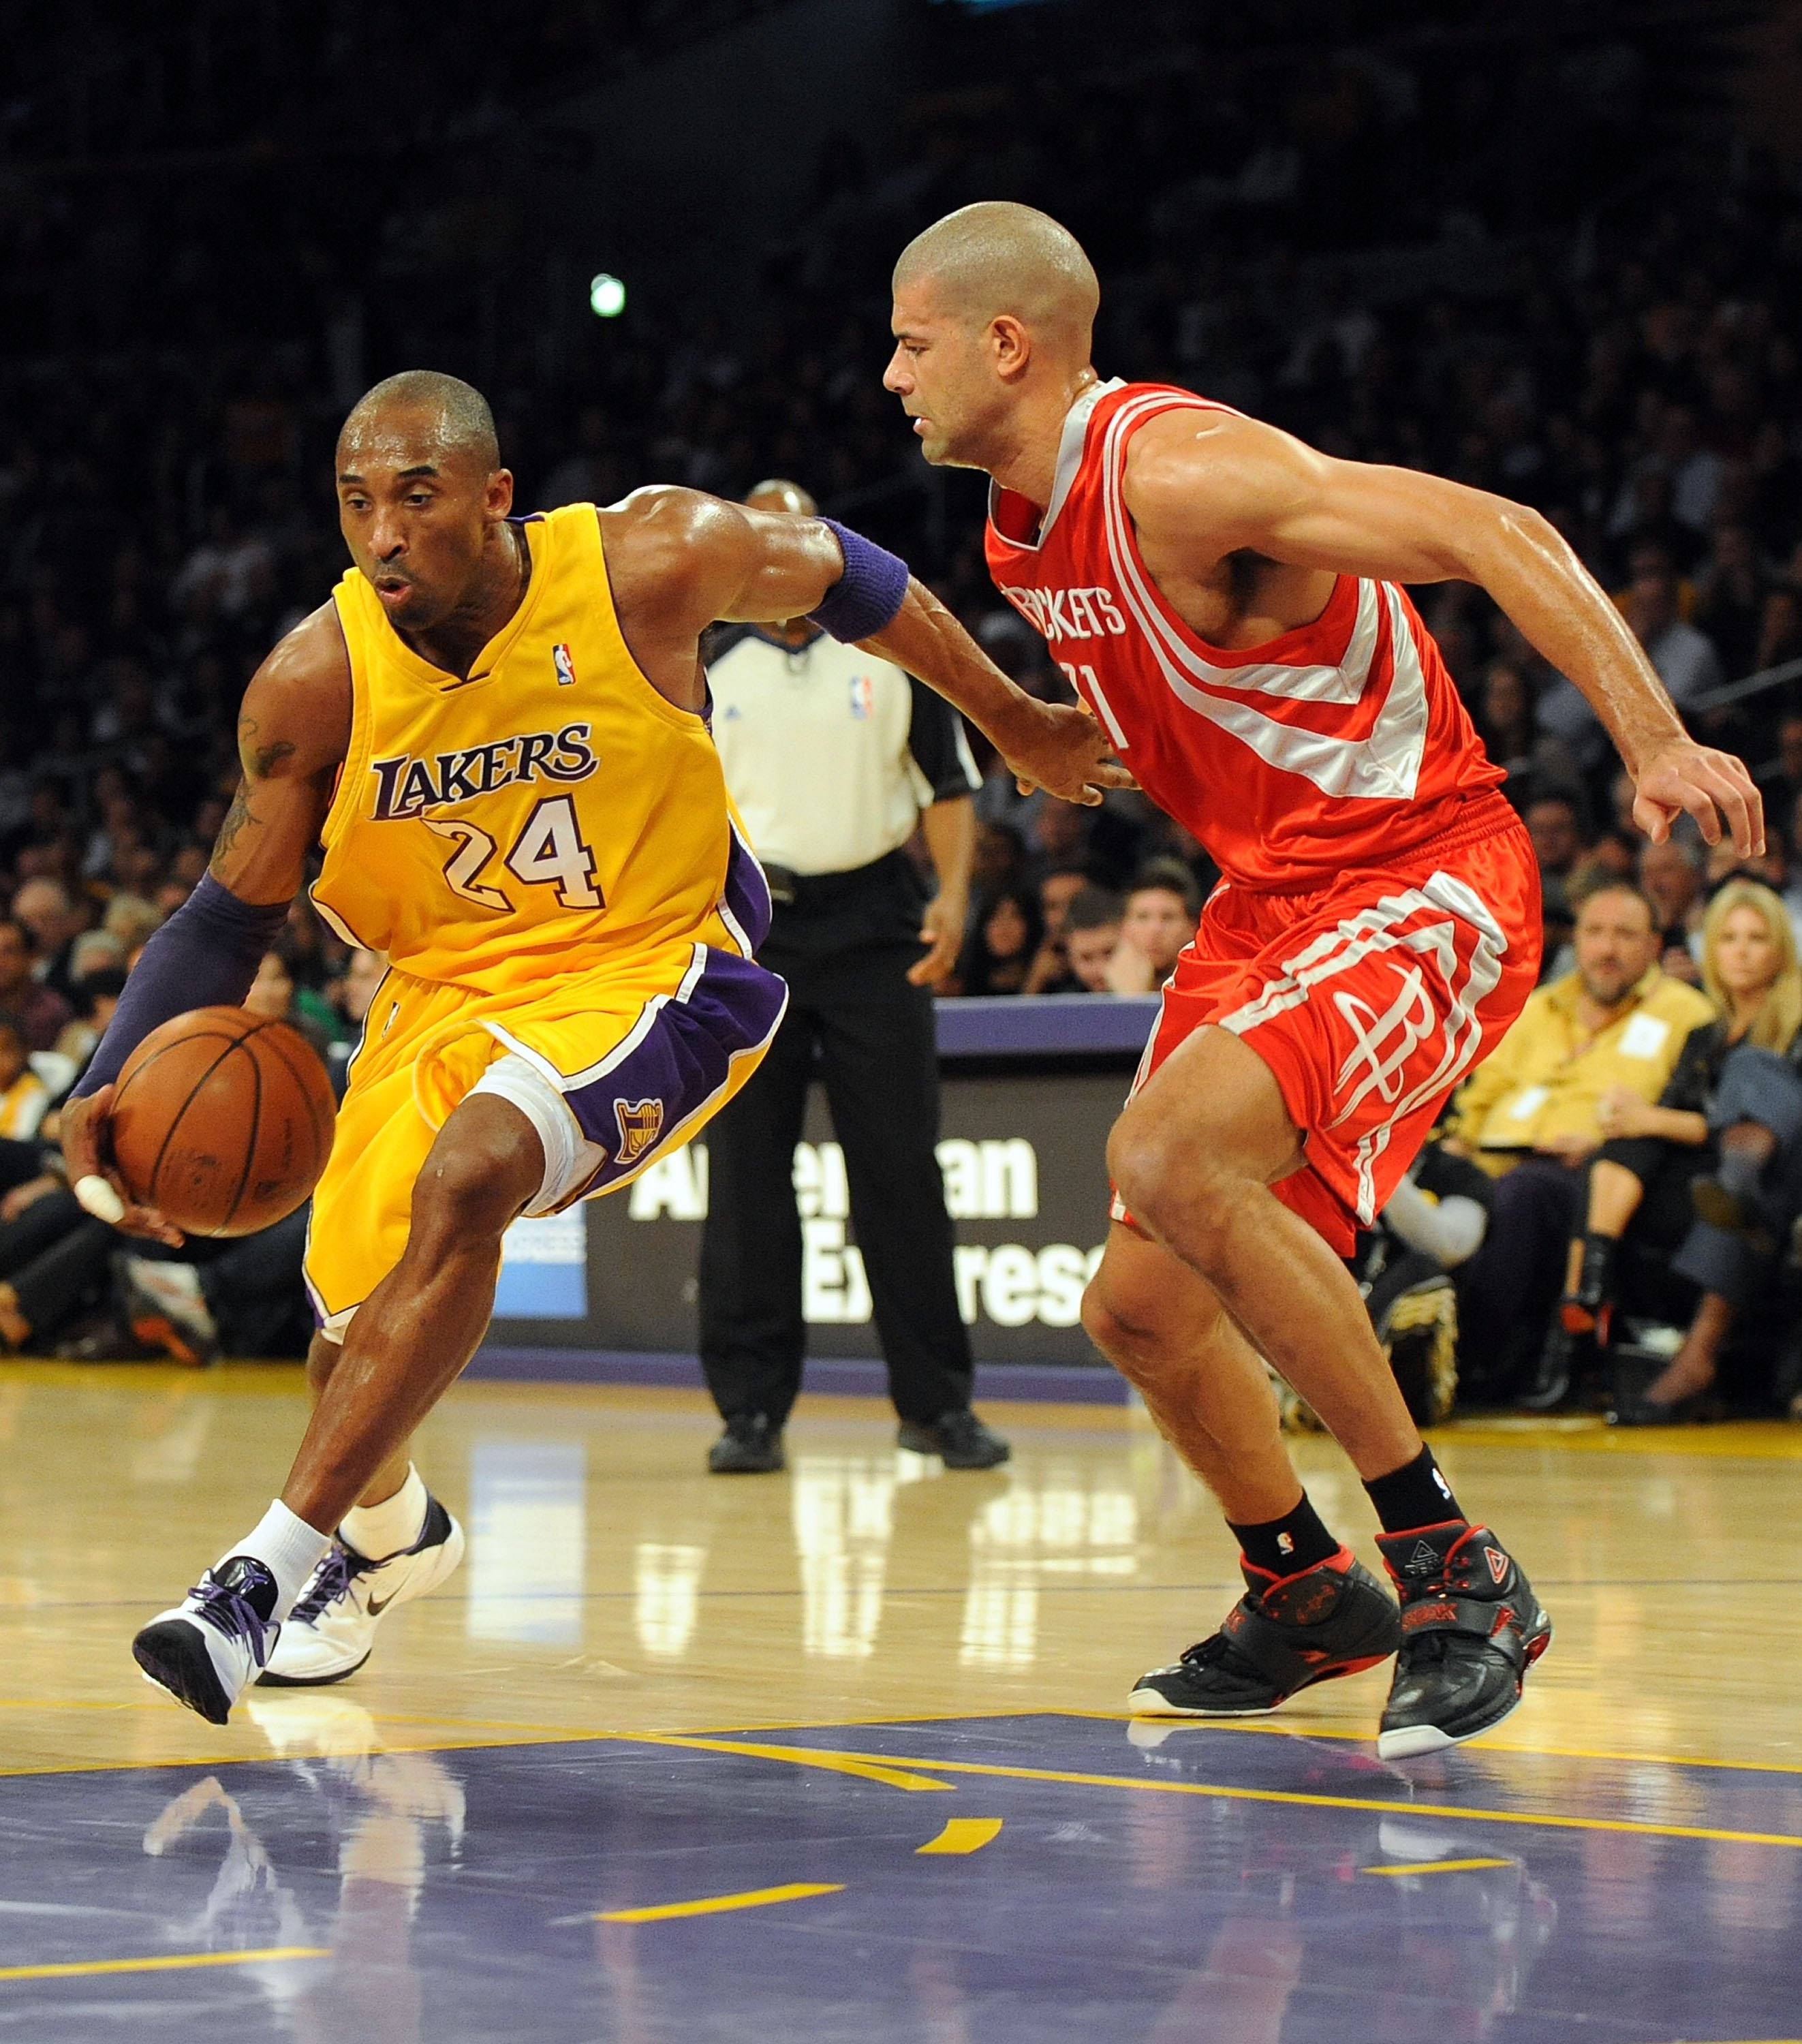 Battier proved in last years playoffs he can guard Kobe Bryant